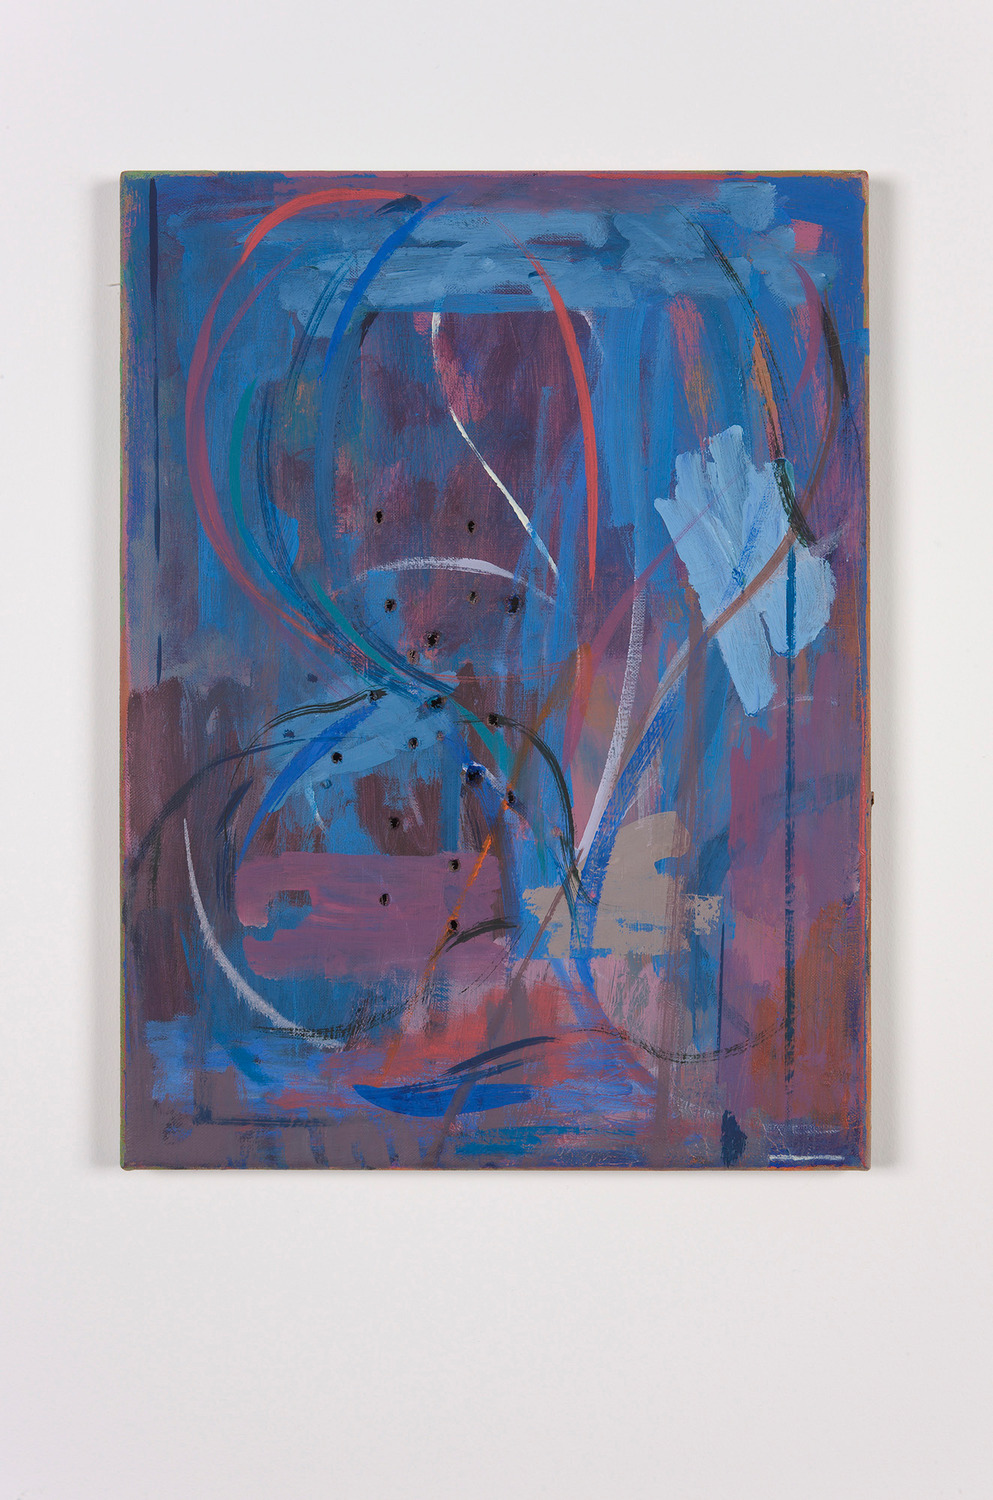 Forever, 2011, Oil on linen, 40 x 30 x 2 cm